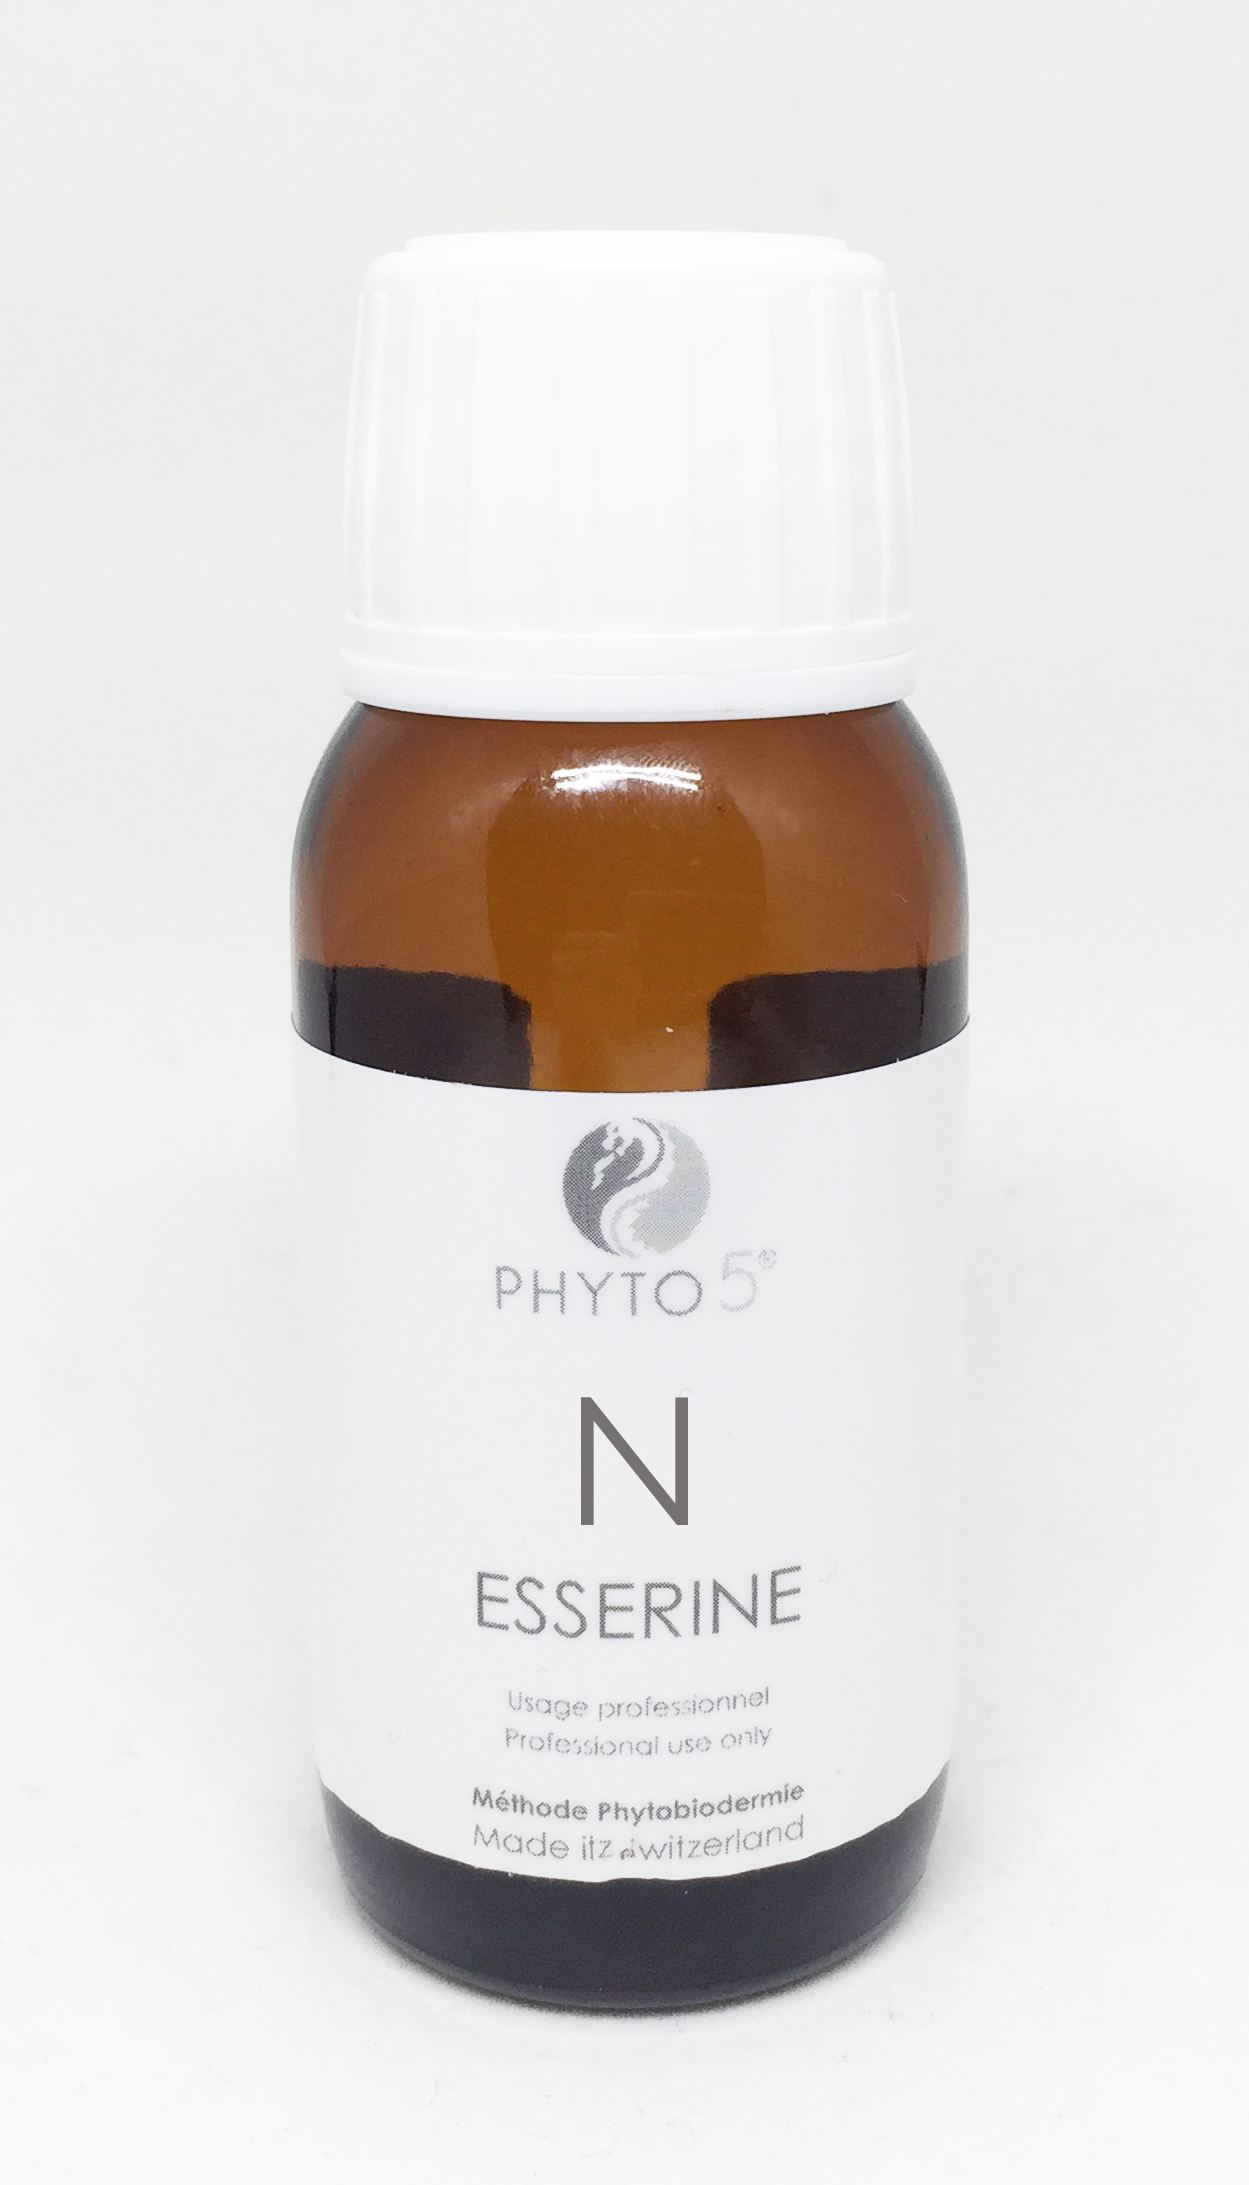 N (Normalizing) Esserine (essential oil blend)